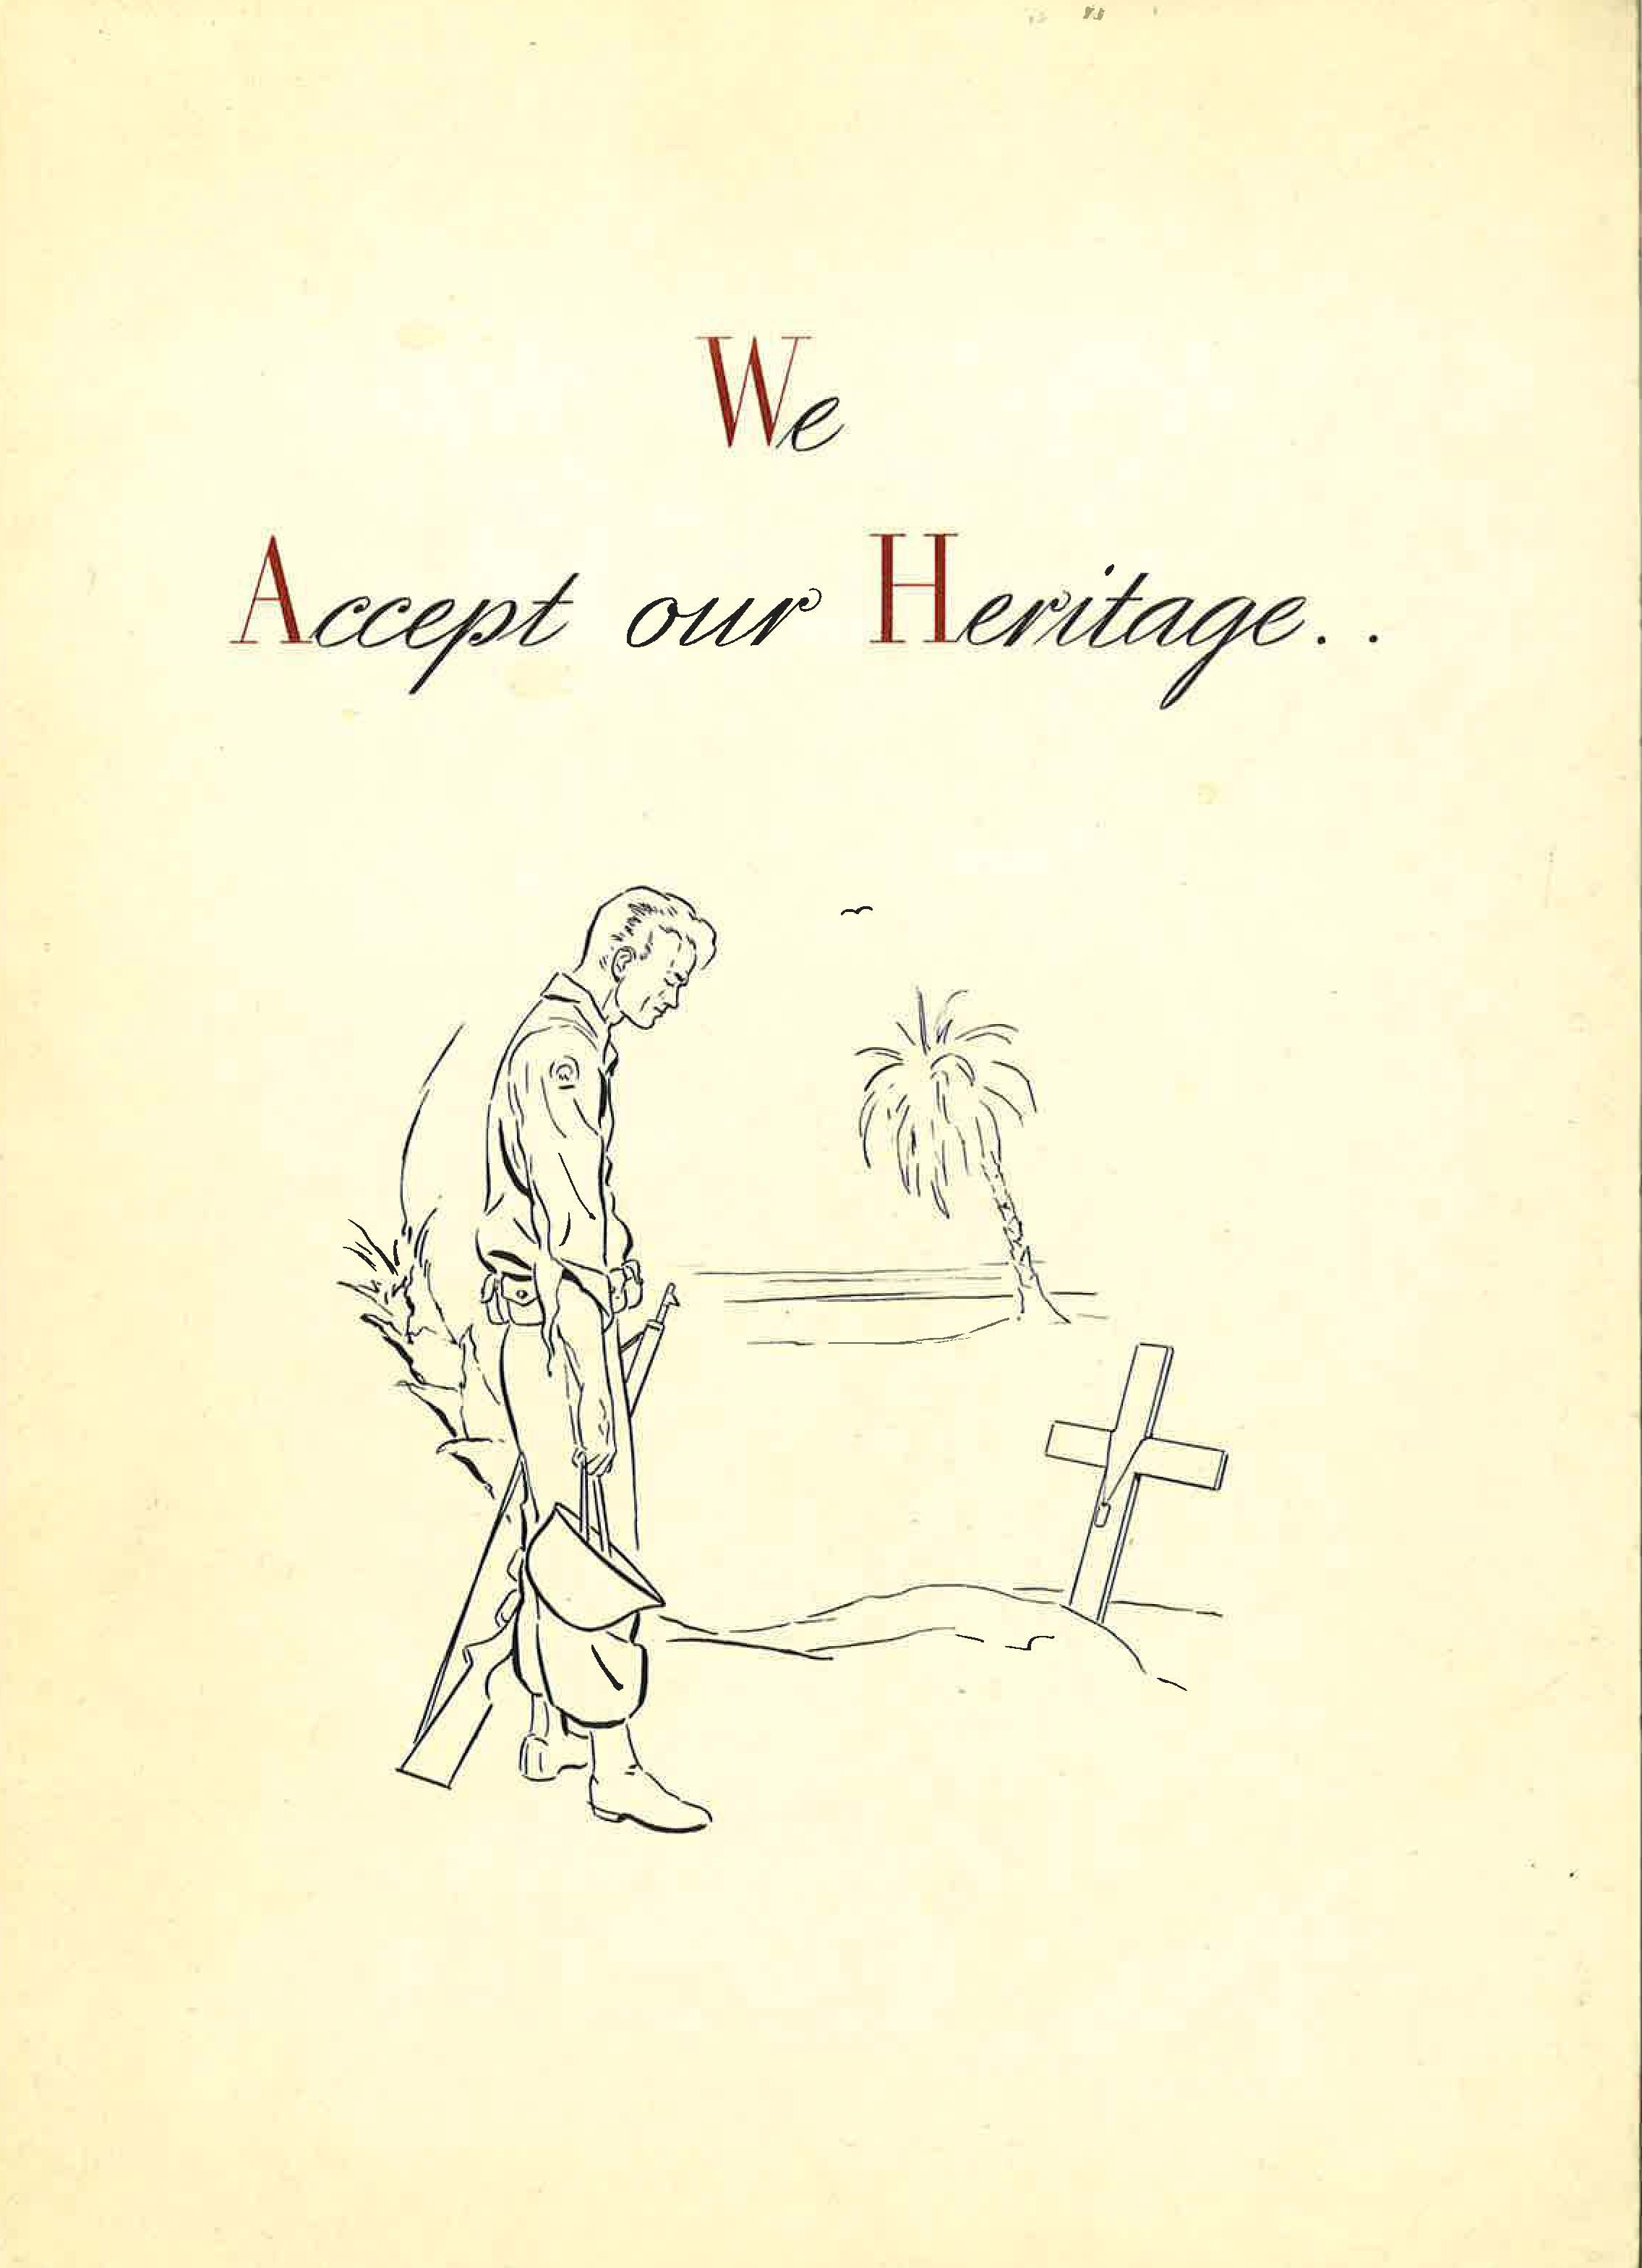 We Accept Our Heritage..Booklet, circa 1947